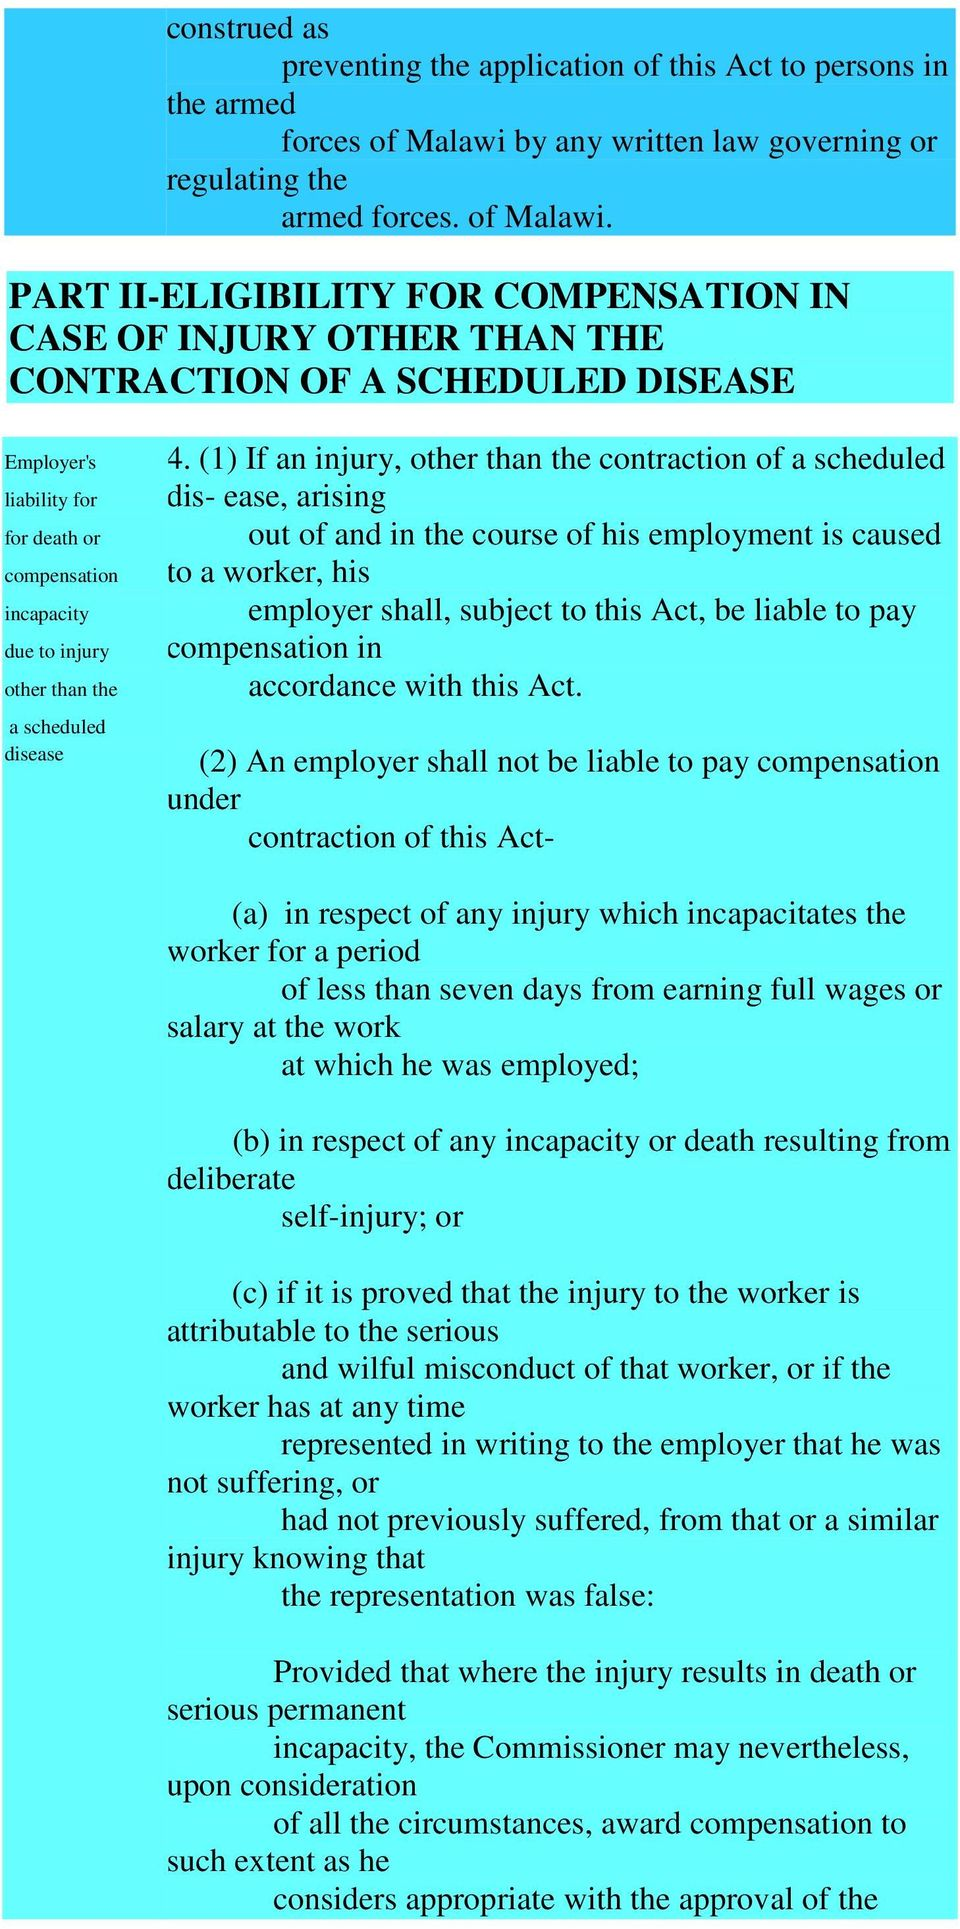 PART II-ELIGIBILITY FOR COMPENSATION IN CASE OF INJURY OTHER THAN THE CONTRACTION OF A SCHEDULED DISEASE Employer's liability for for death or compensation incapacity due to injury other than the a